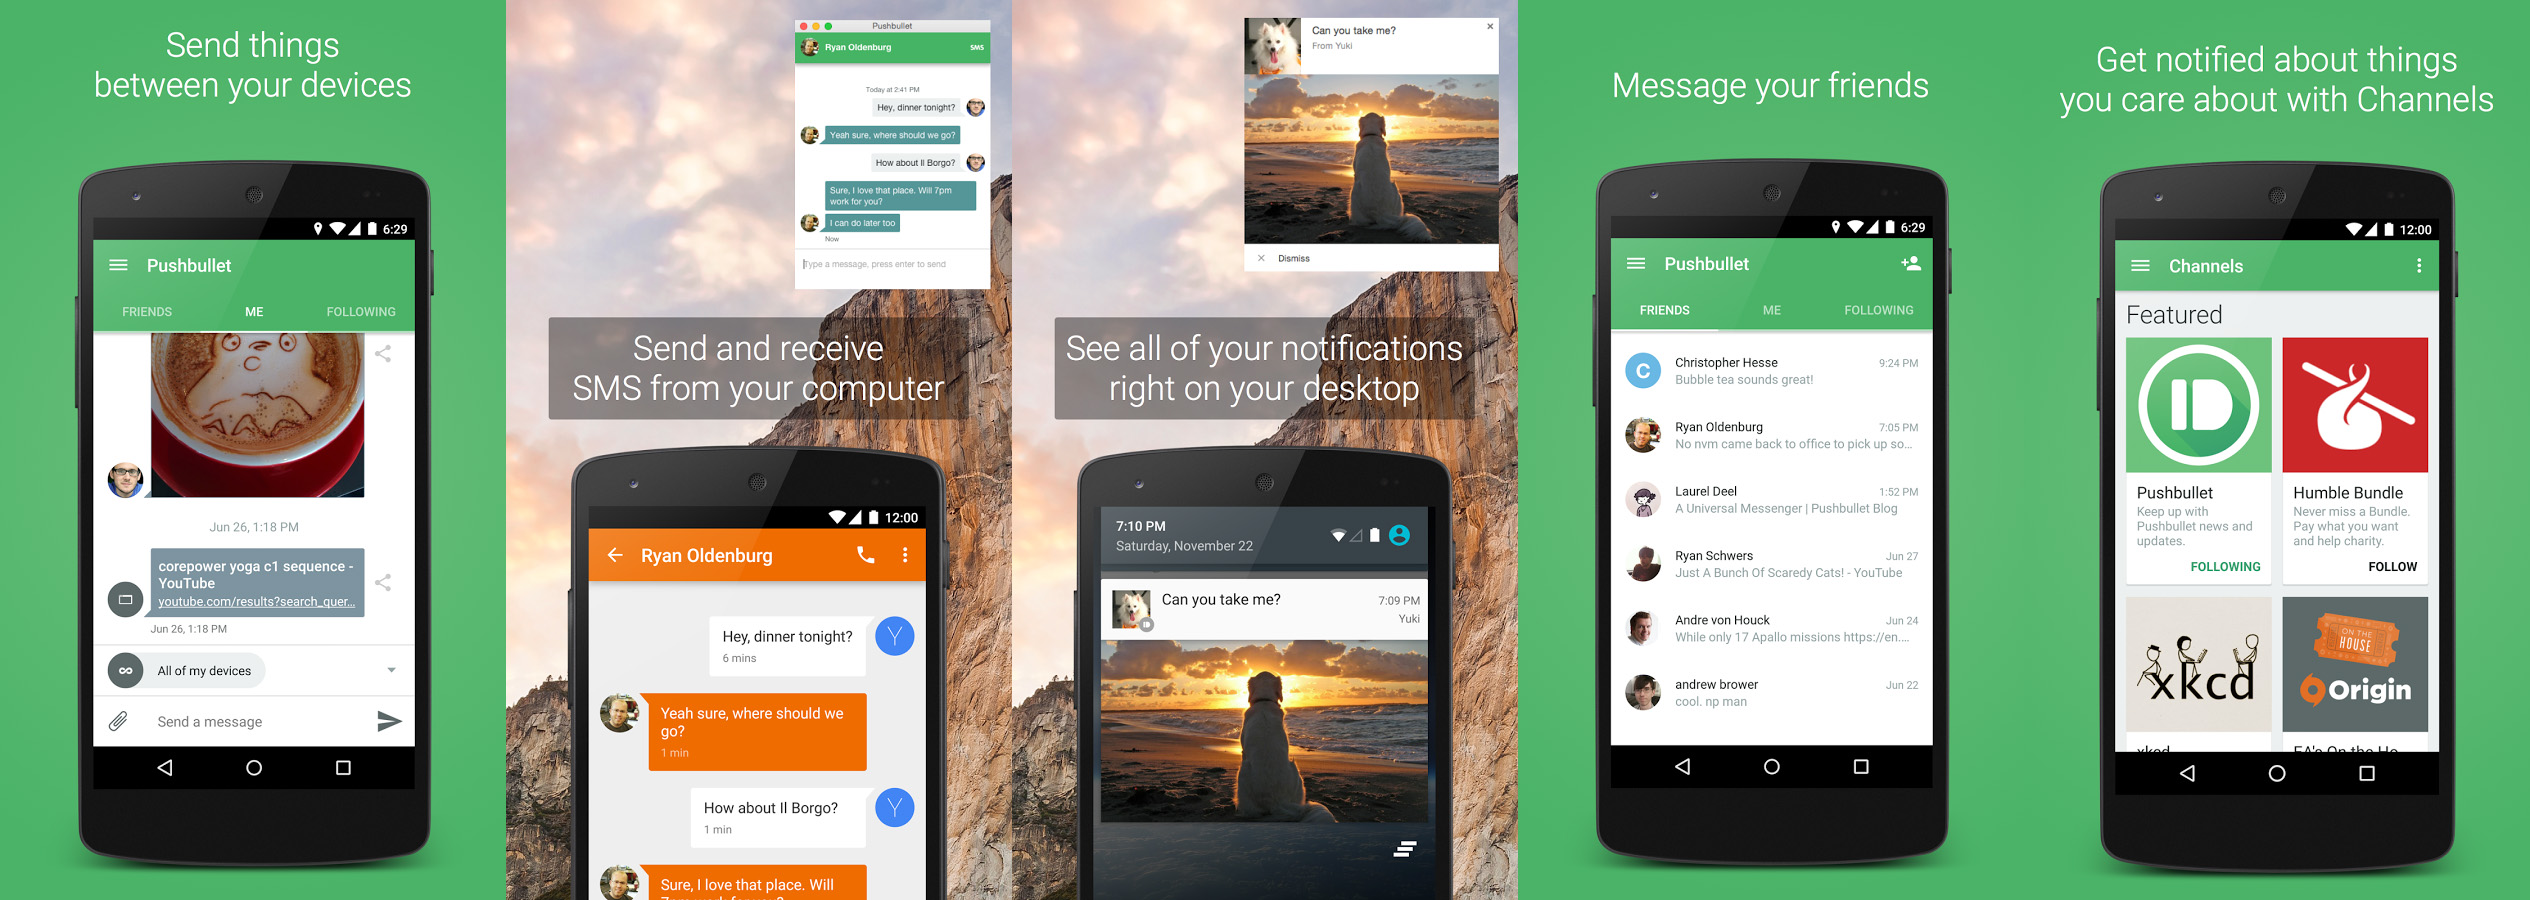 pushbullet_screens